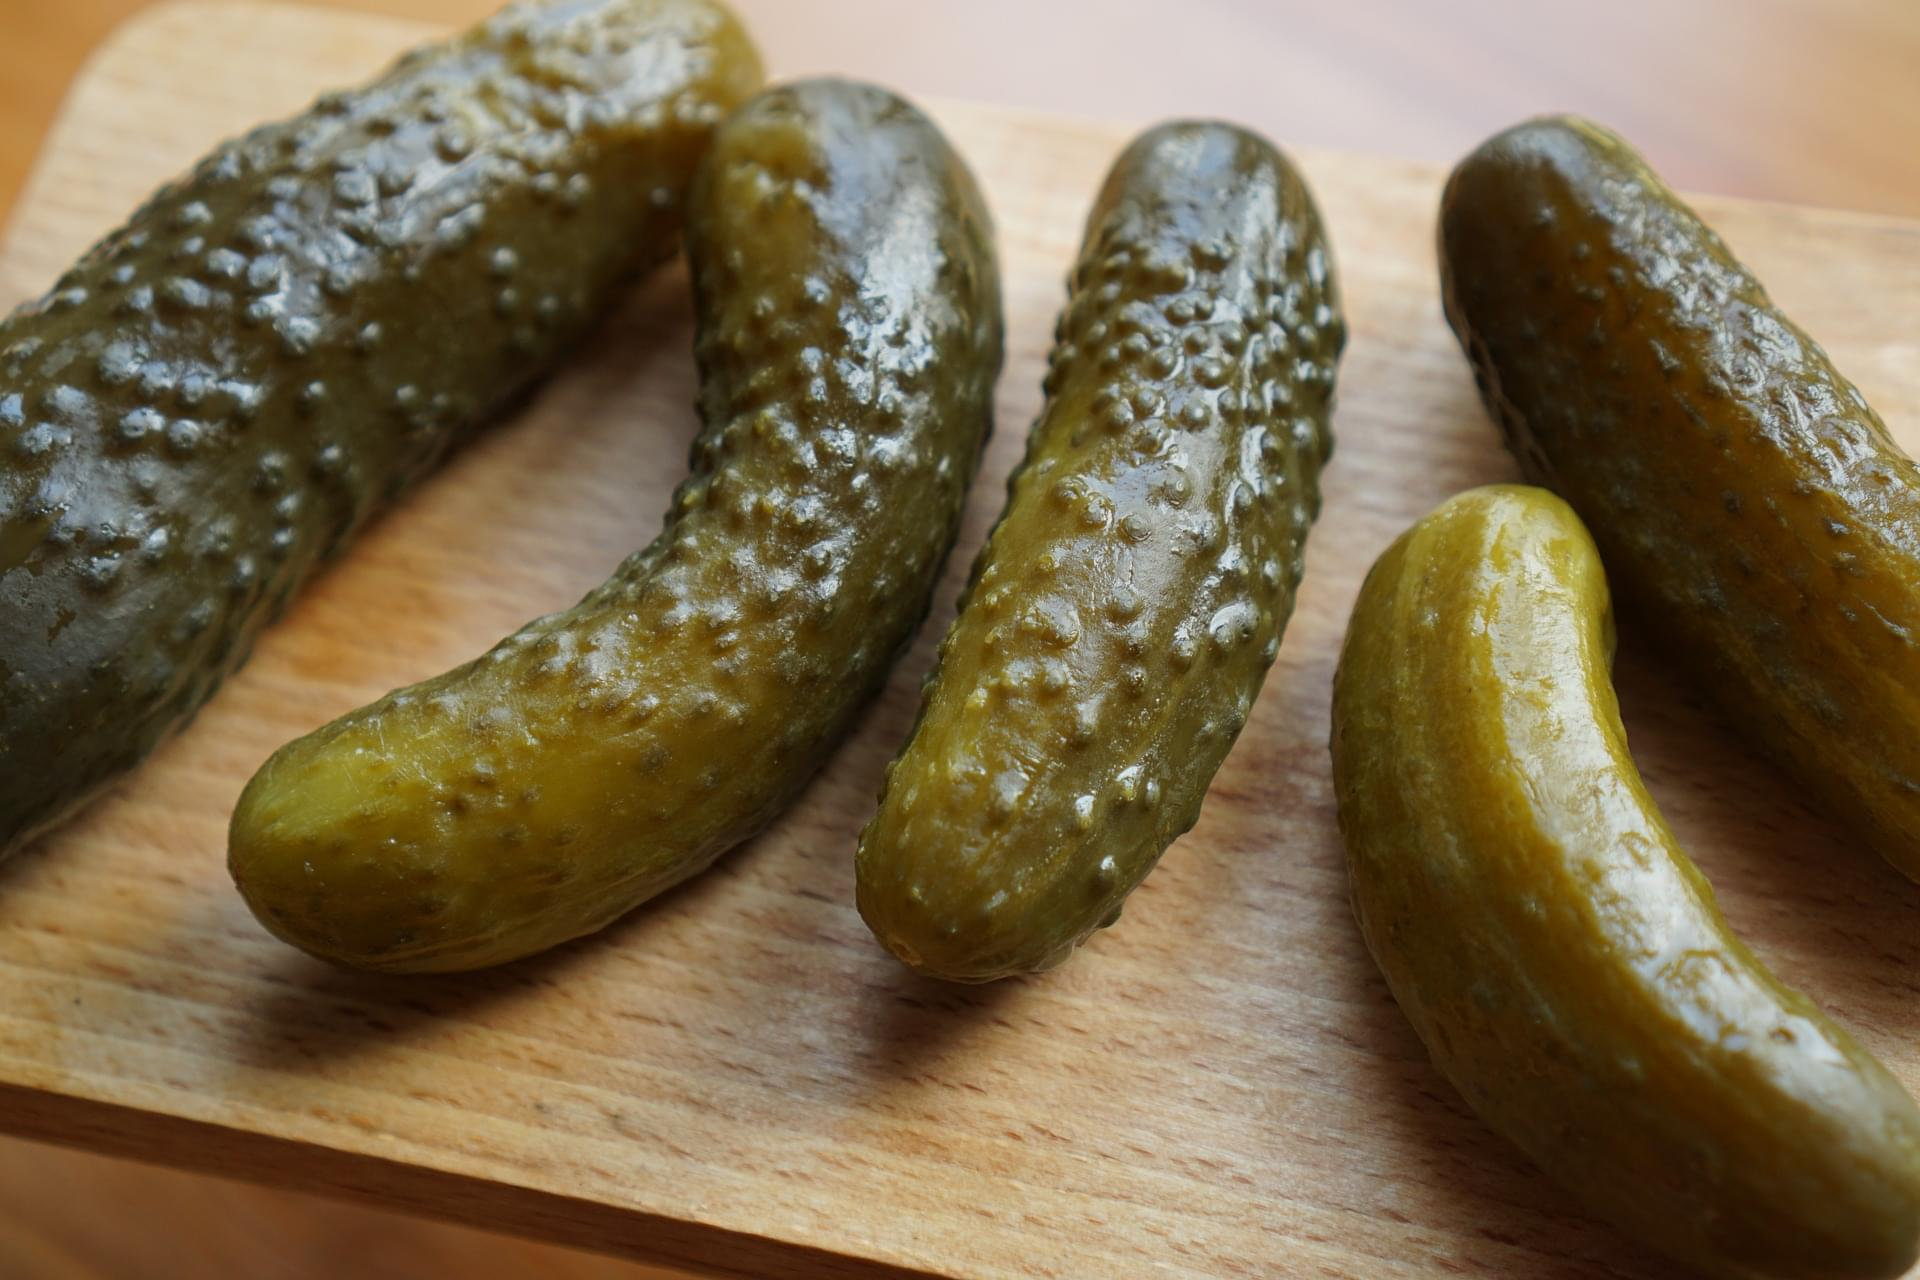 Sandwich Shop Ditches Bread For New Viral Pickle Sandwiches [PHOTO]